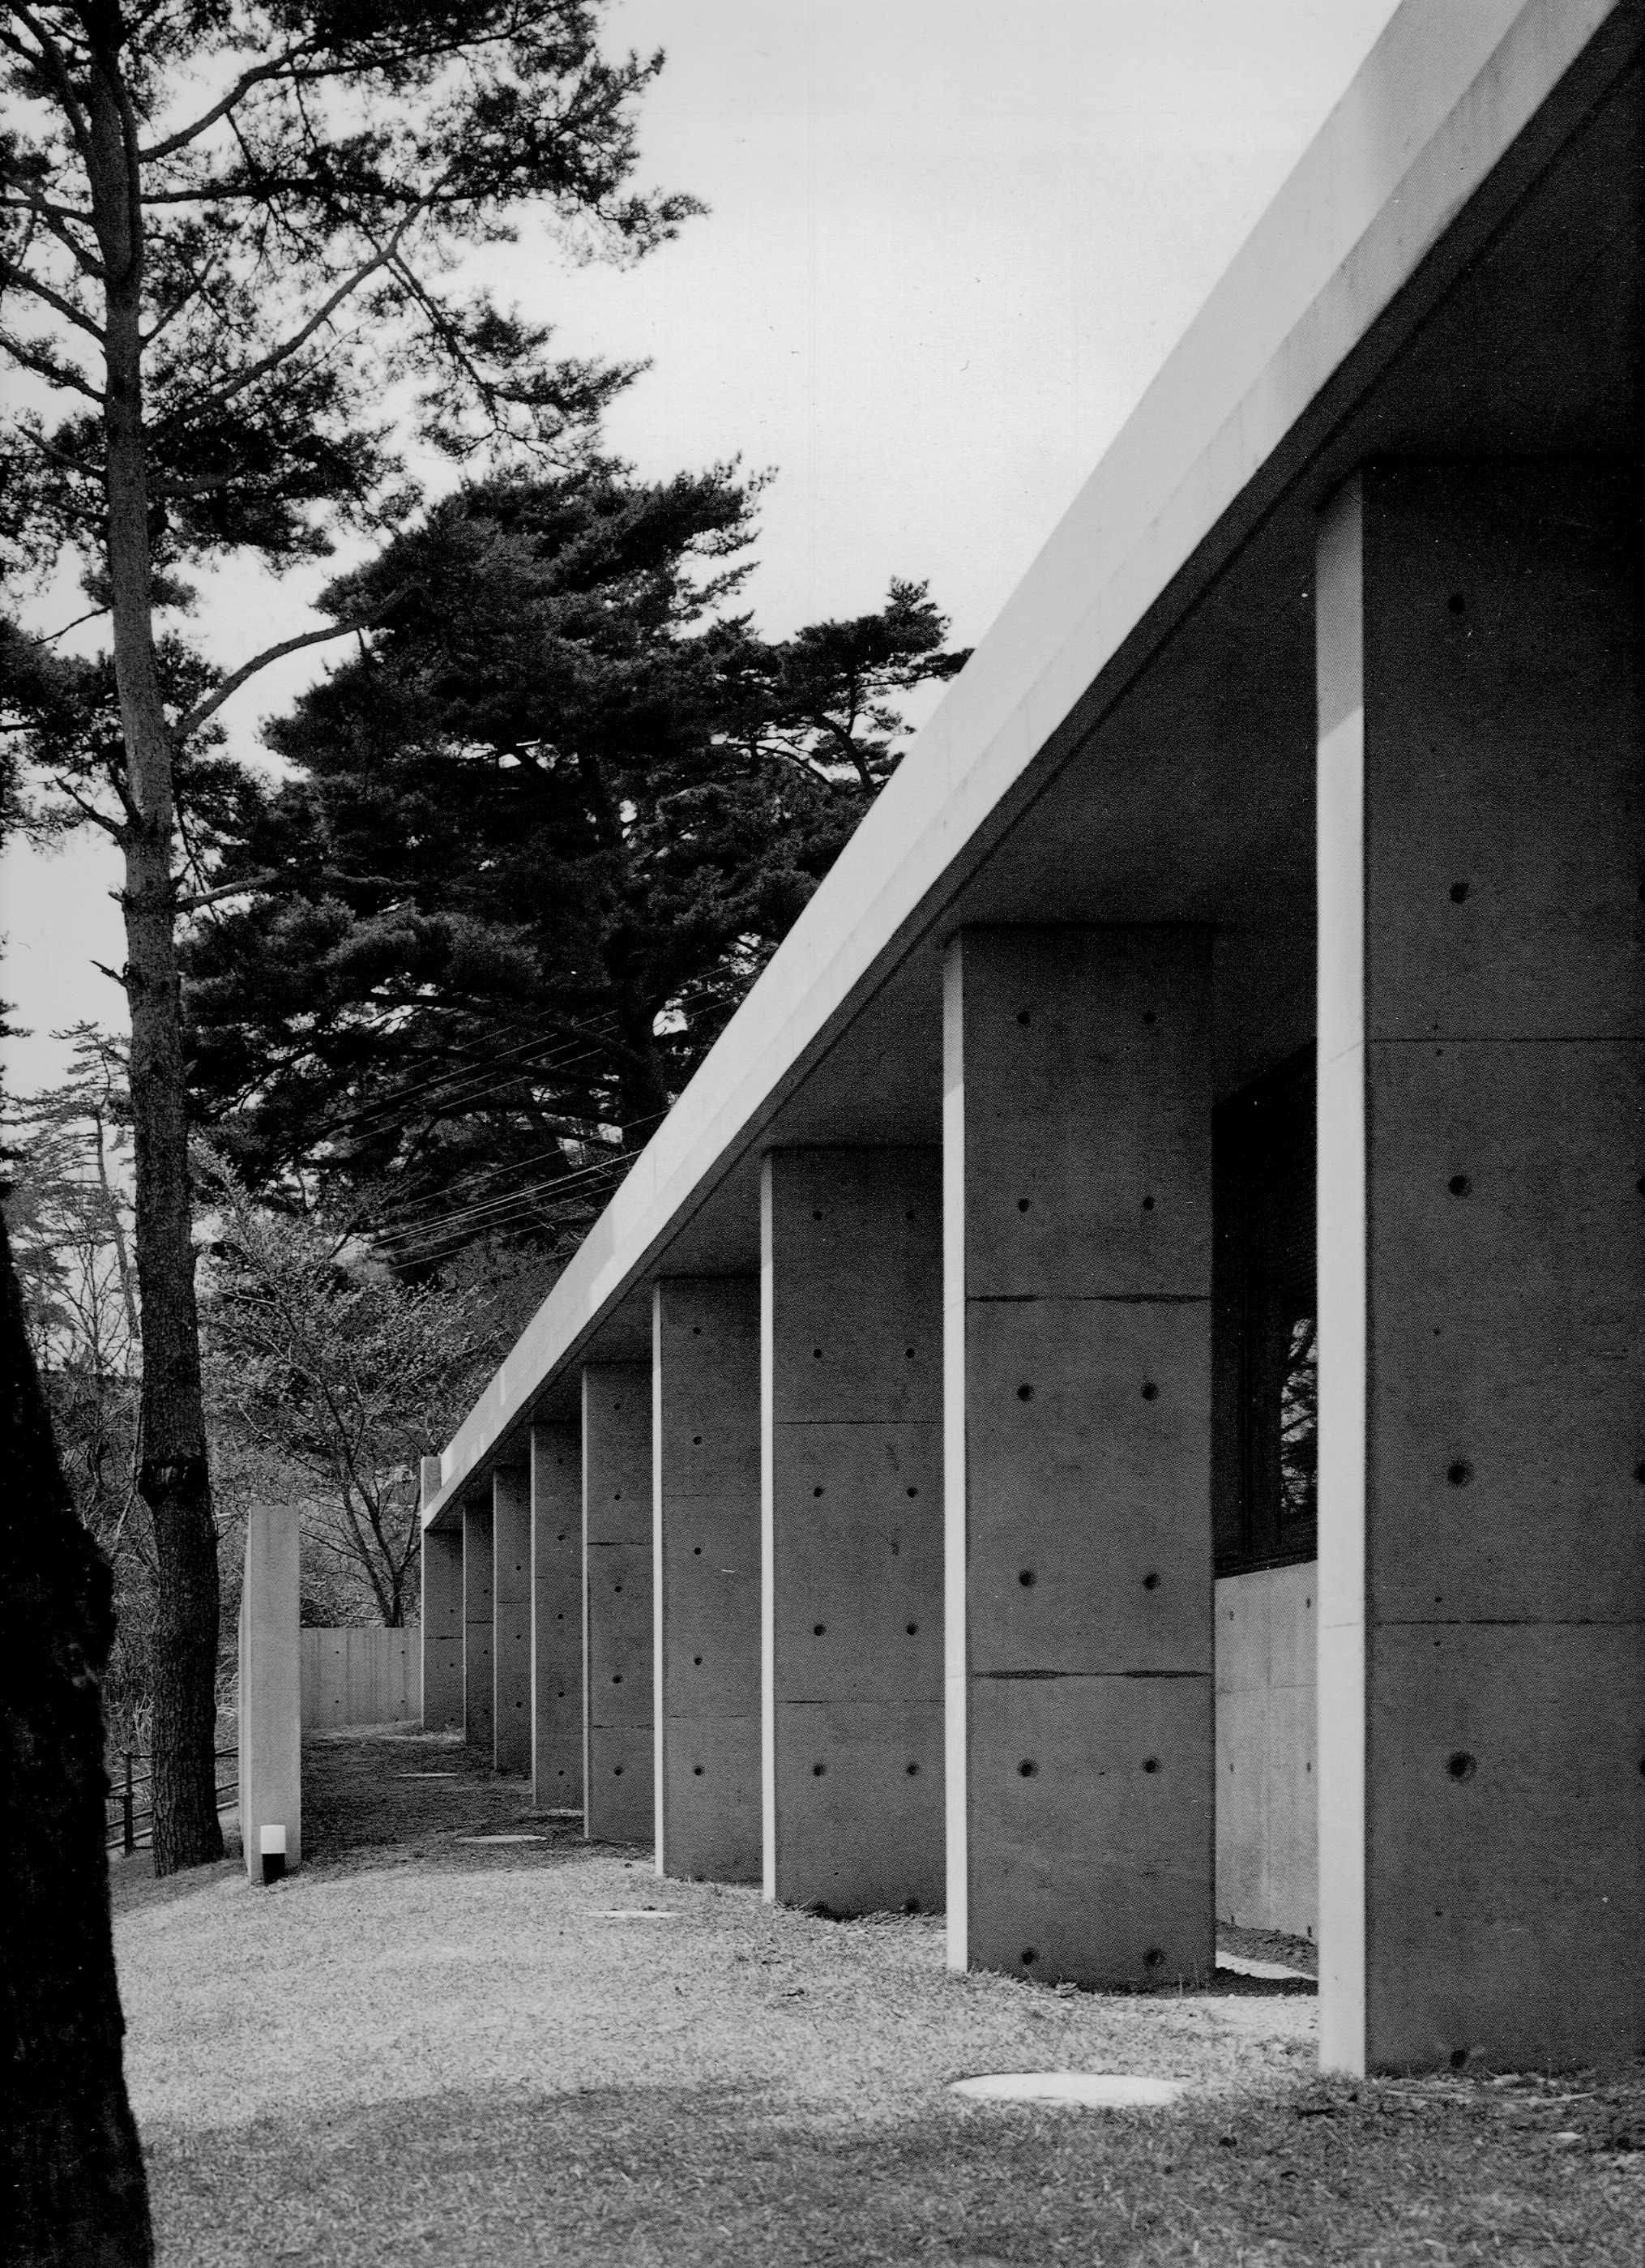 Ando tadao rokko house pinterest - Tadao Ando Koshino House Rooms View From Exterior